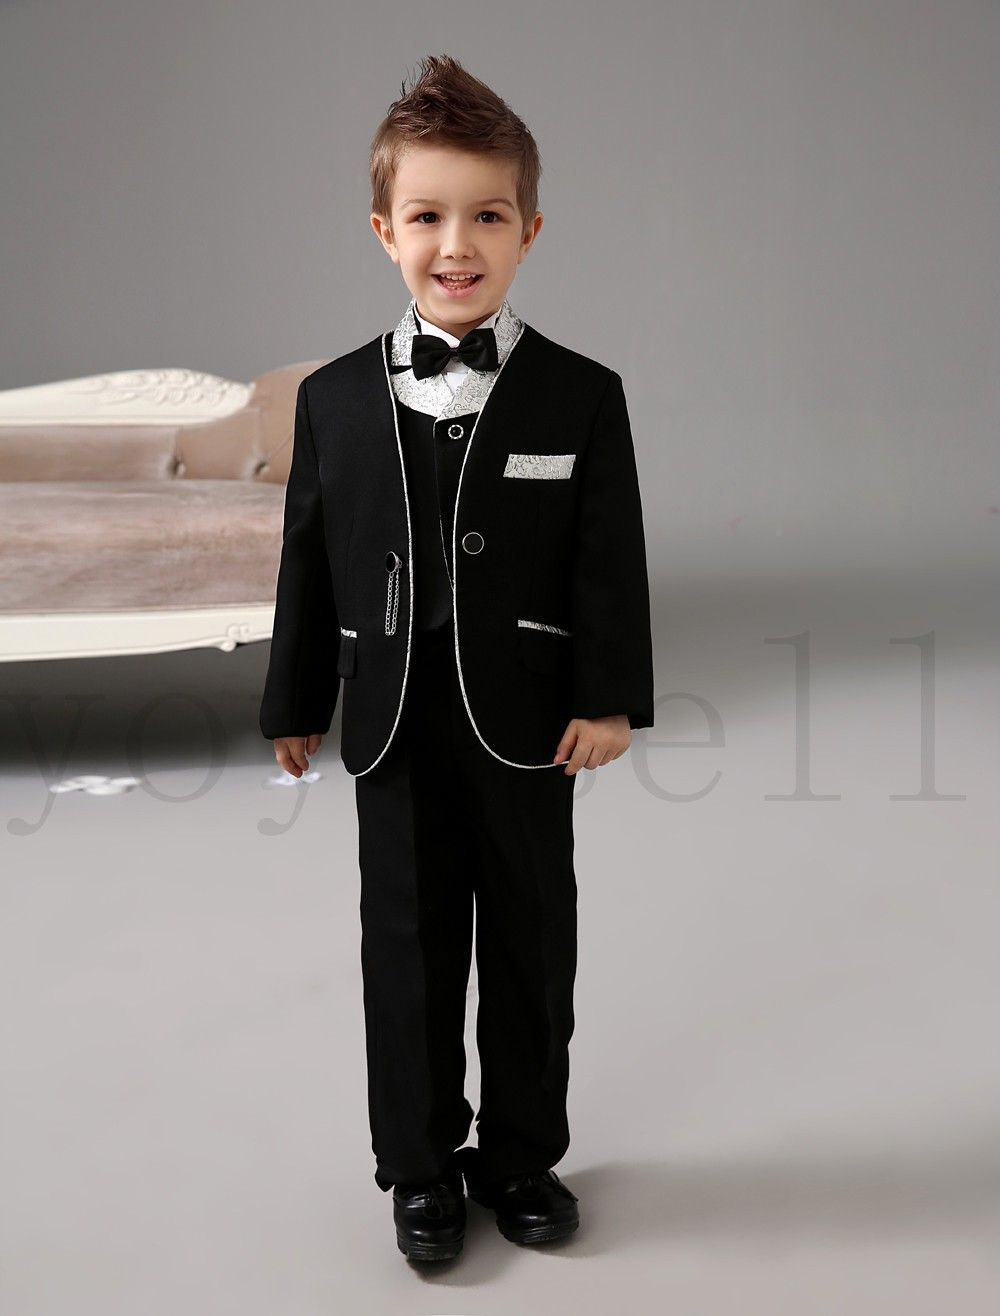 88bafc4c58 Formal Wedding Suit for Kids Black Boys Wedding Party Clothes (Coat+ ...